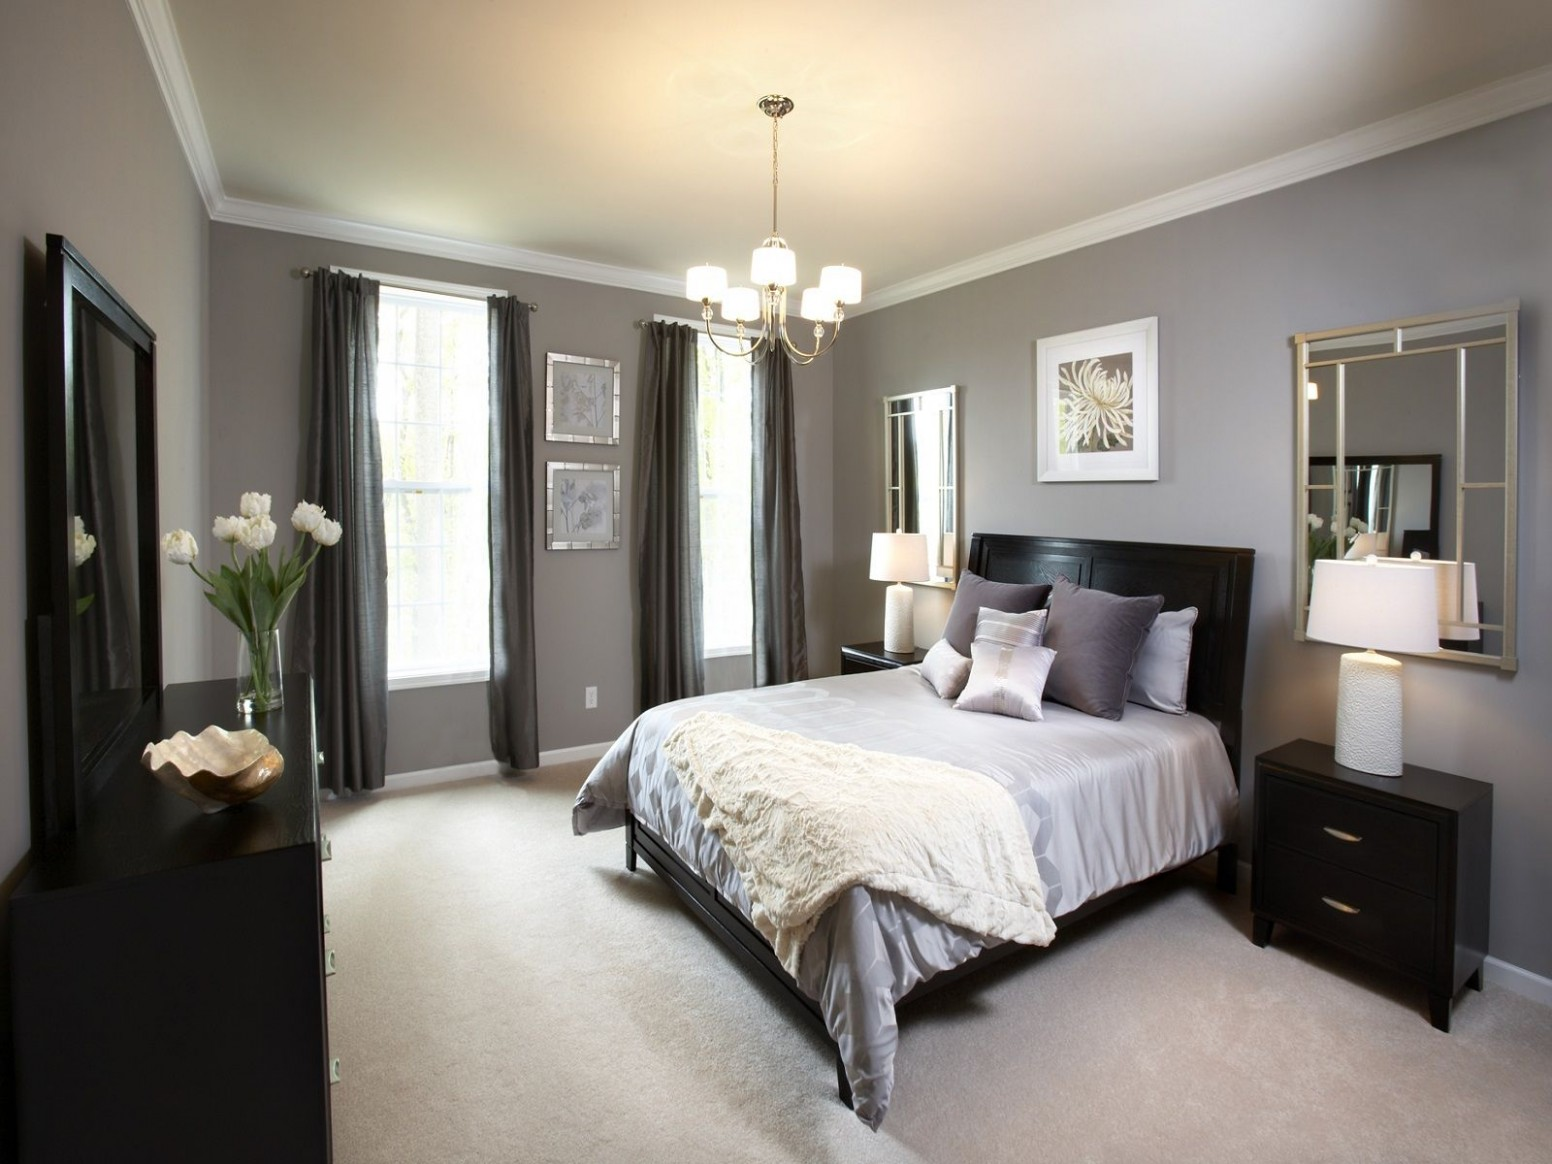 Awesome Bedroom Shade Chandelier Over White Bedding Ideas With  - Bedroom Ideas With Black Furniture